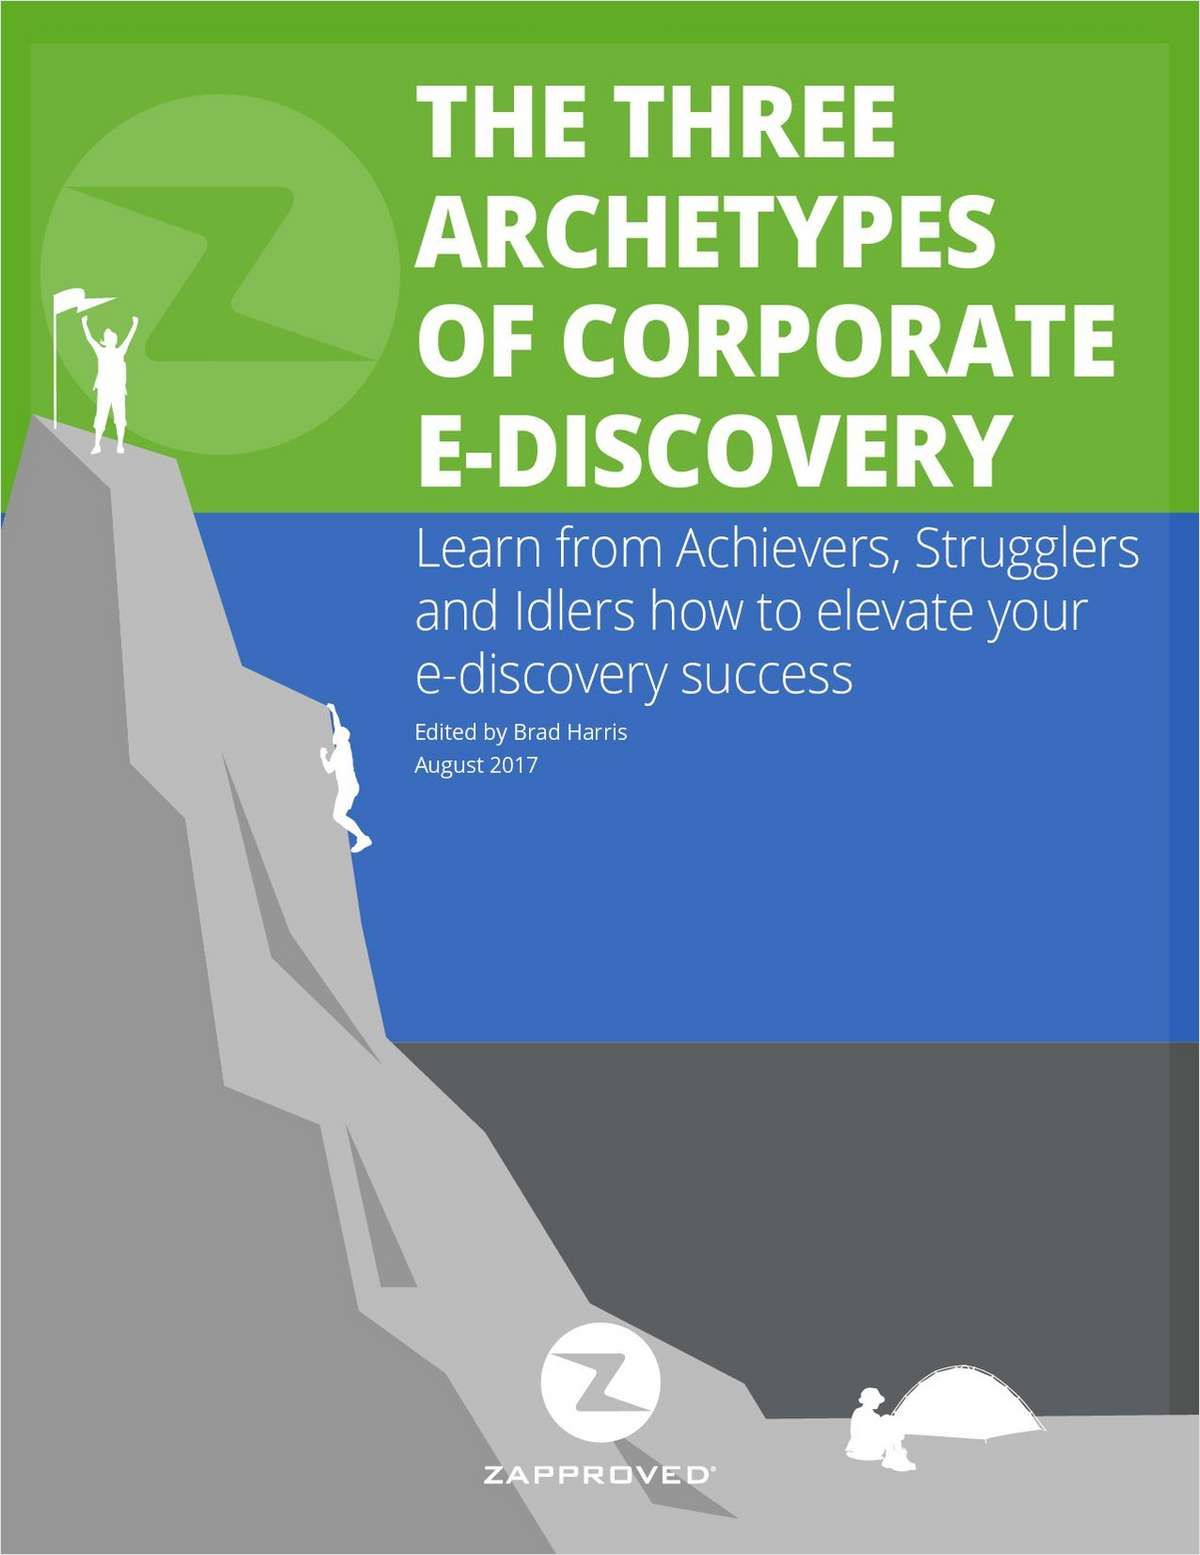 The Three Archetypes of Corporate E-Discovery